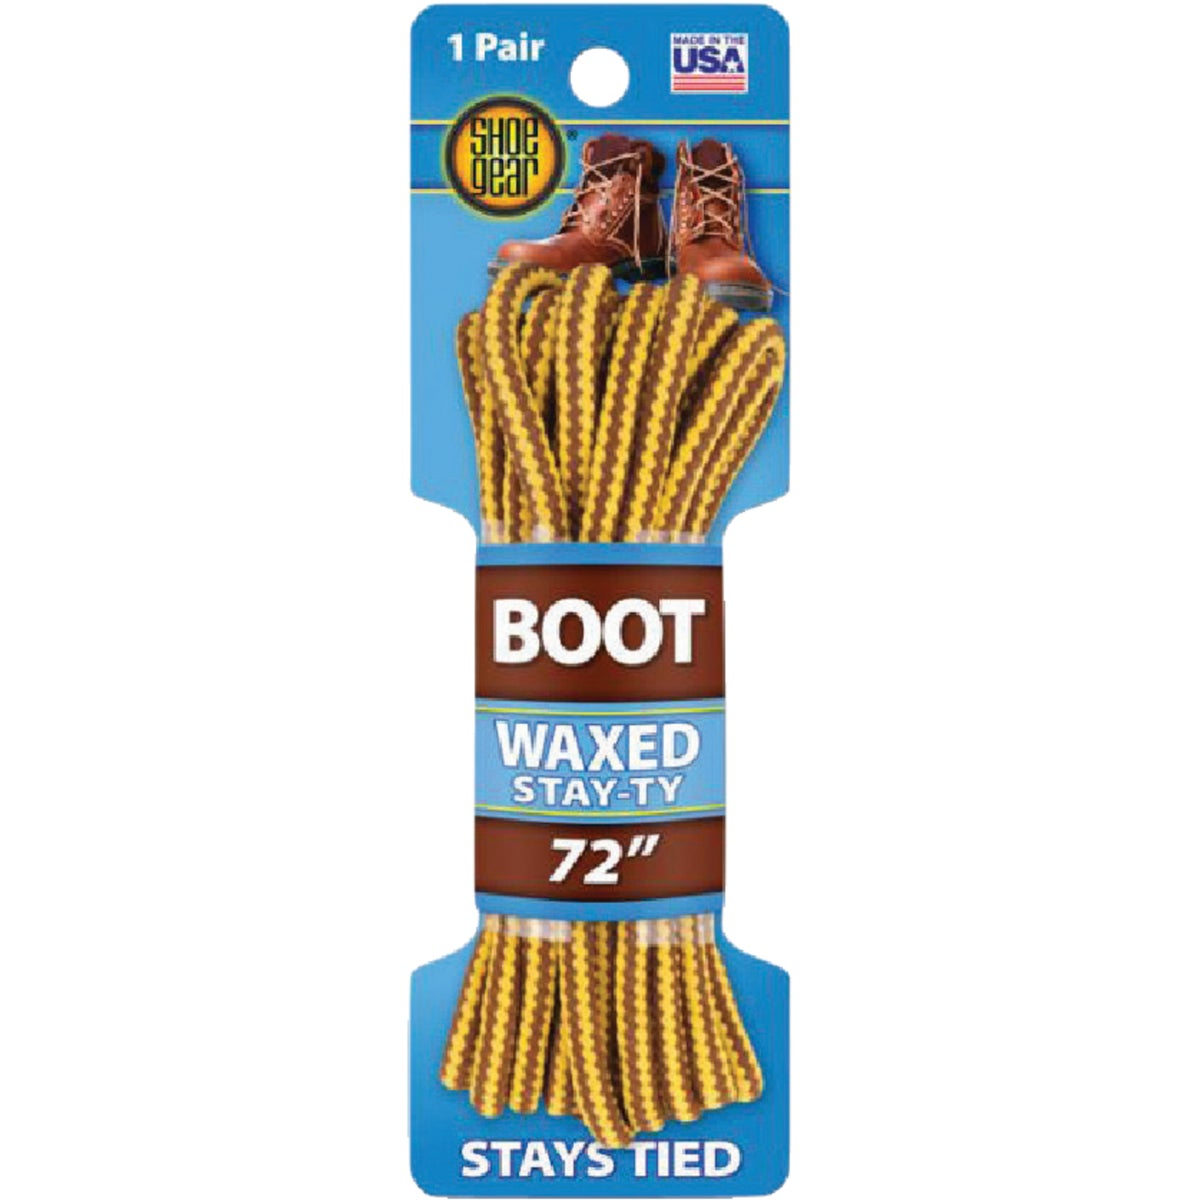 "72"" NYLON BOOT LACES - 66460 by Sc Johnson"